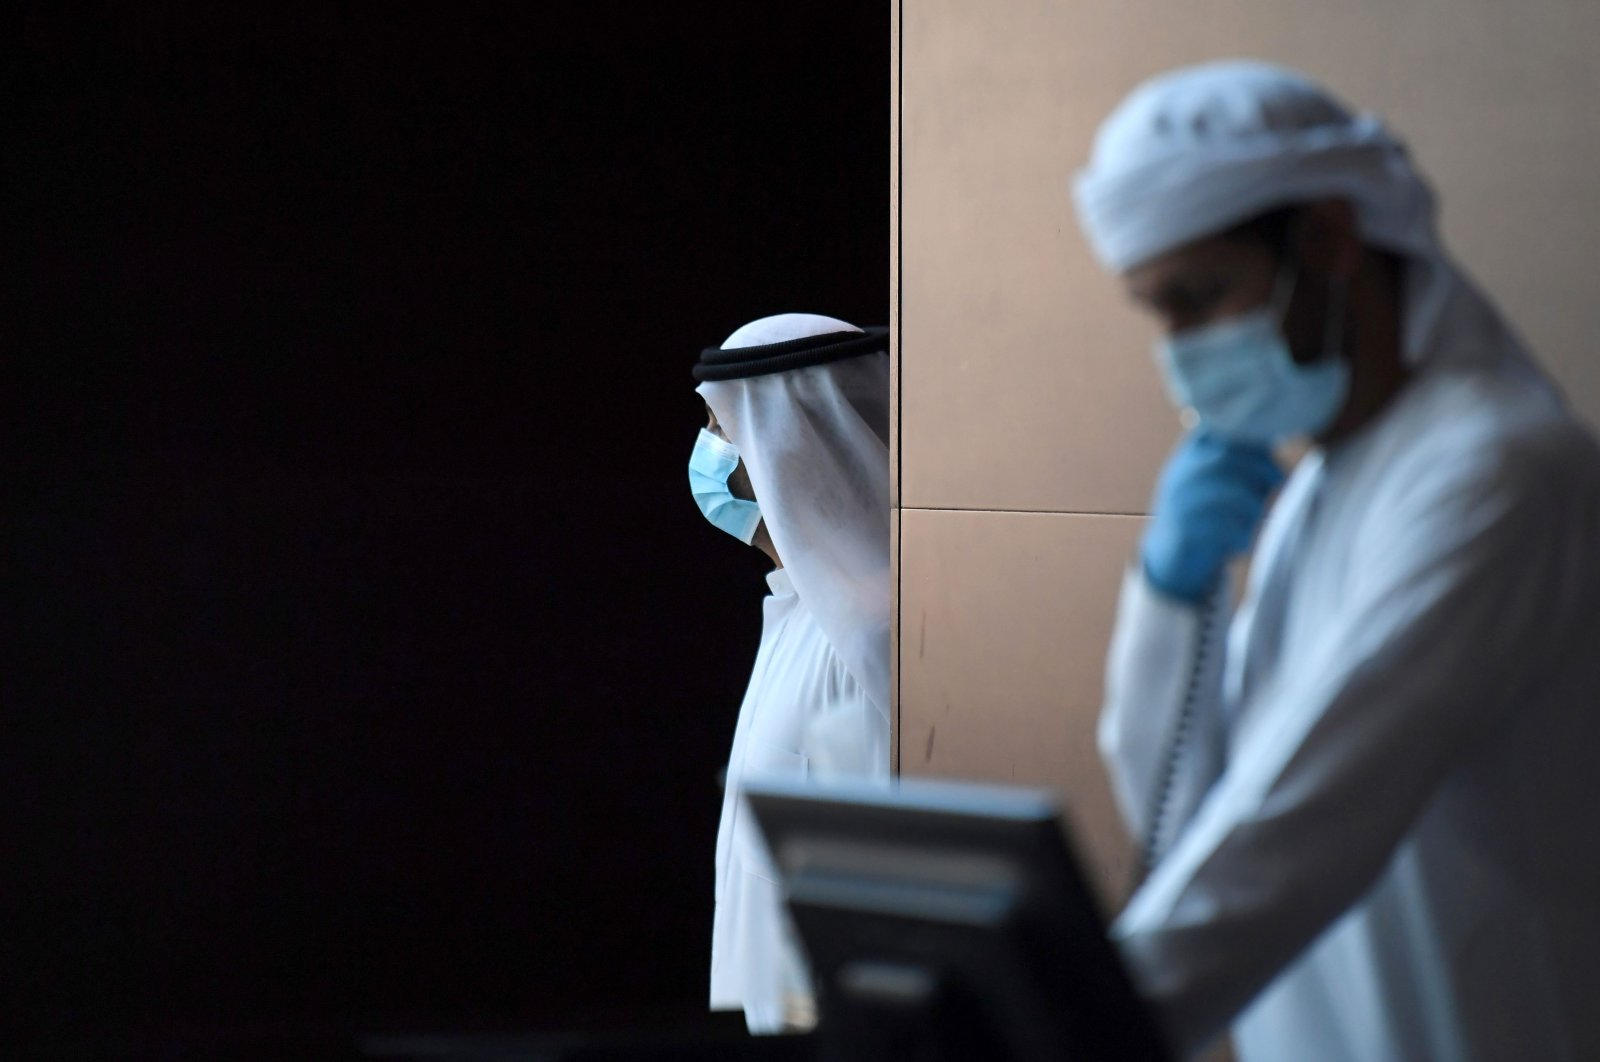 Emirati hotel staff wearing protective masks and gloves work at a hotel where families returning to the UAE will stay 14-days in quarantine amid the COVID-19, Dubai, Tuesday, April 14, 2020. (AFP Photo)